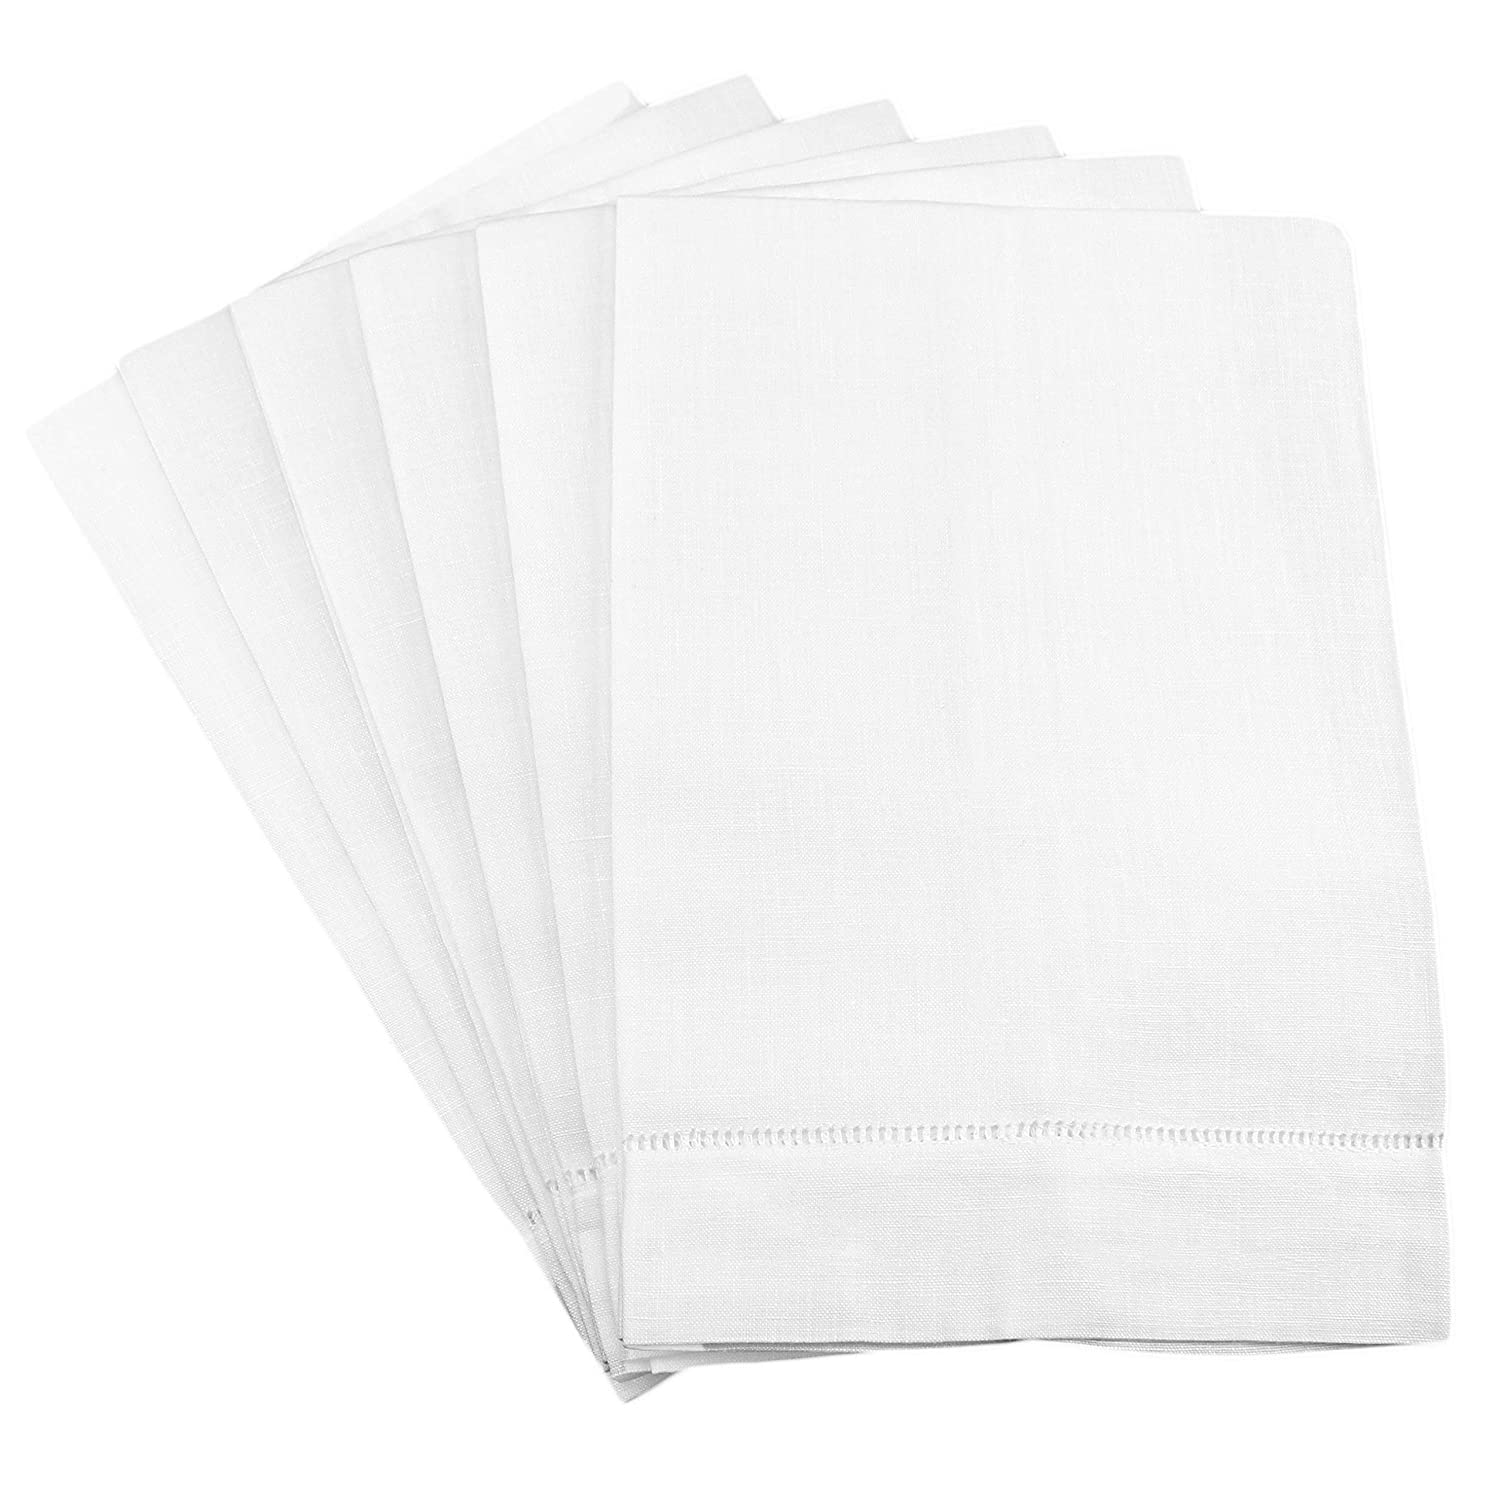 "CleverDelights 6 Pack White Linen Hemstitched Hand Towels - 14"" x 22"" - 100% Linen - Tea Towels"